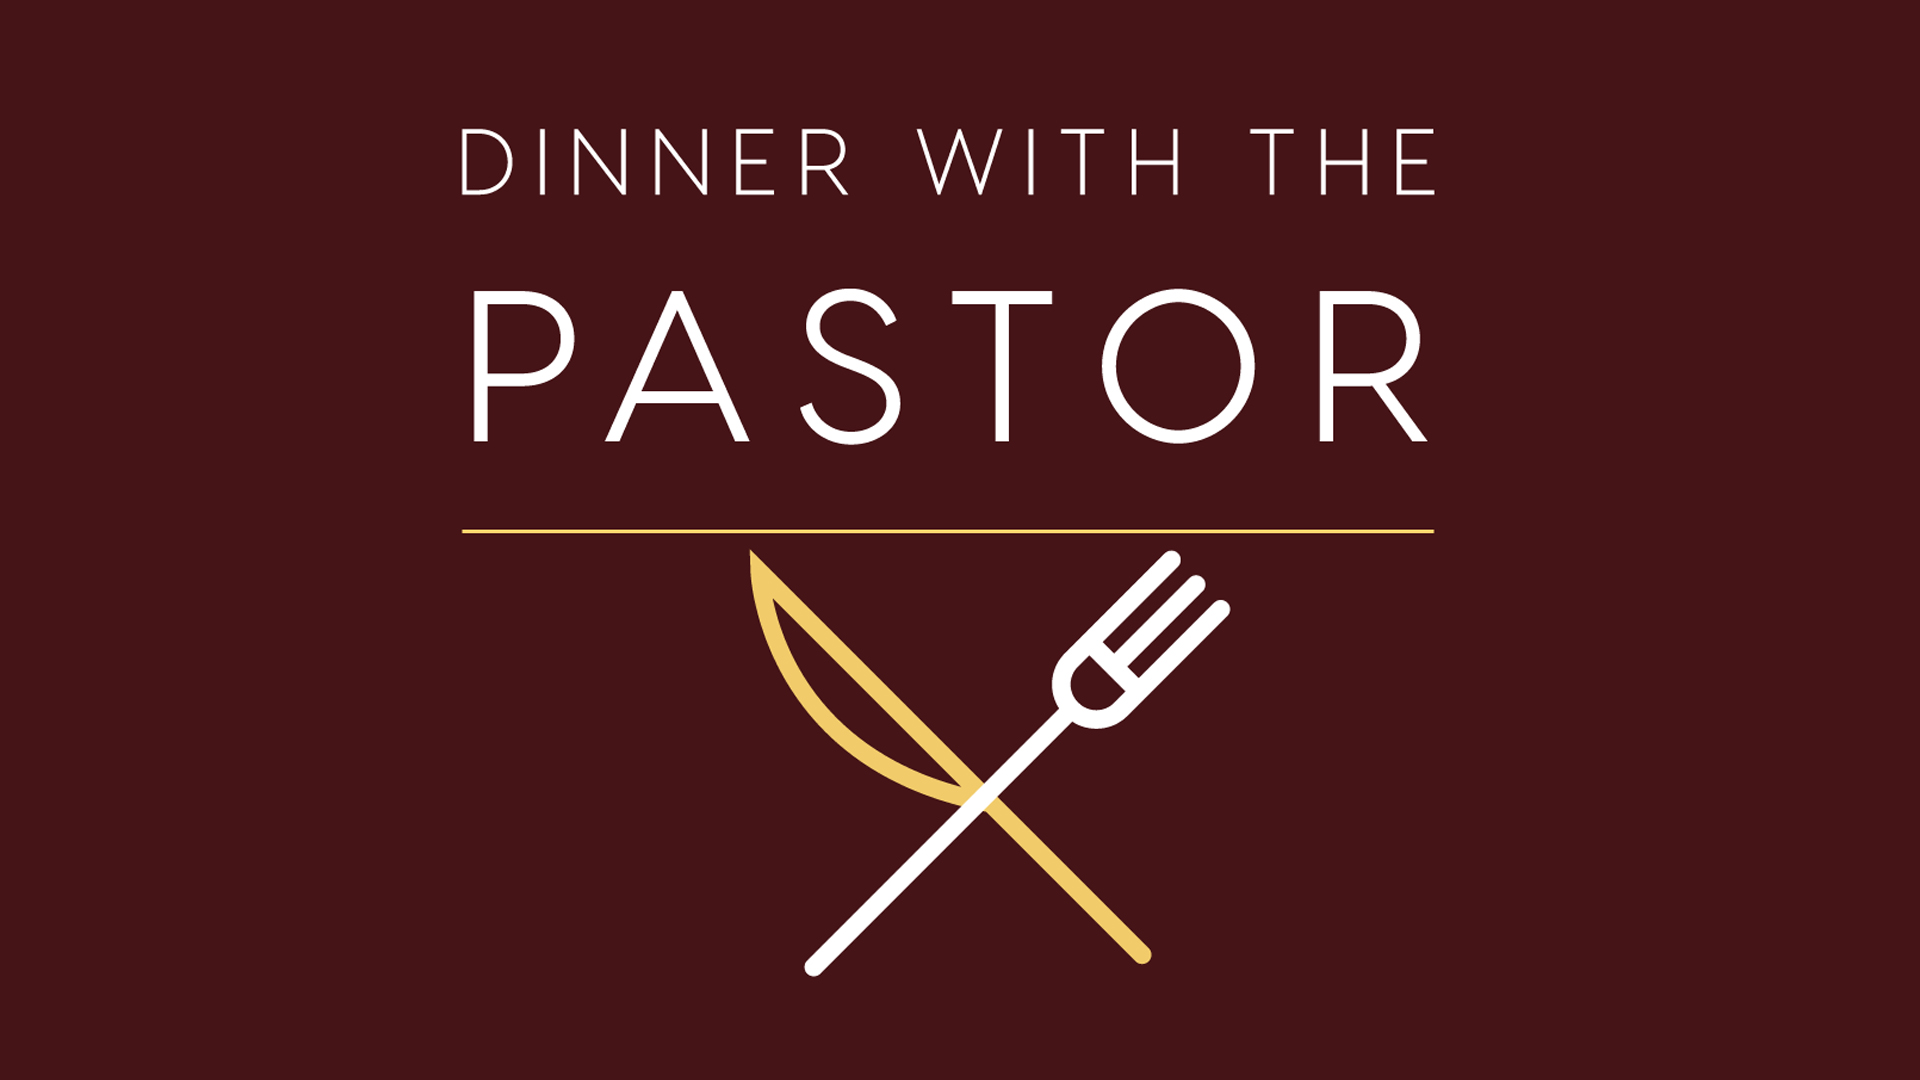 Dinner With The Pastor